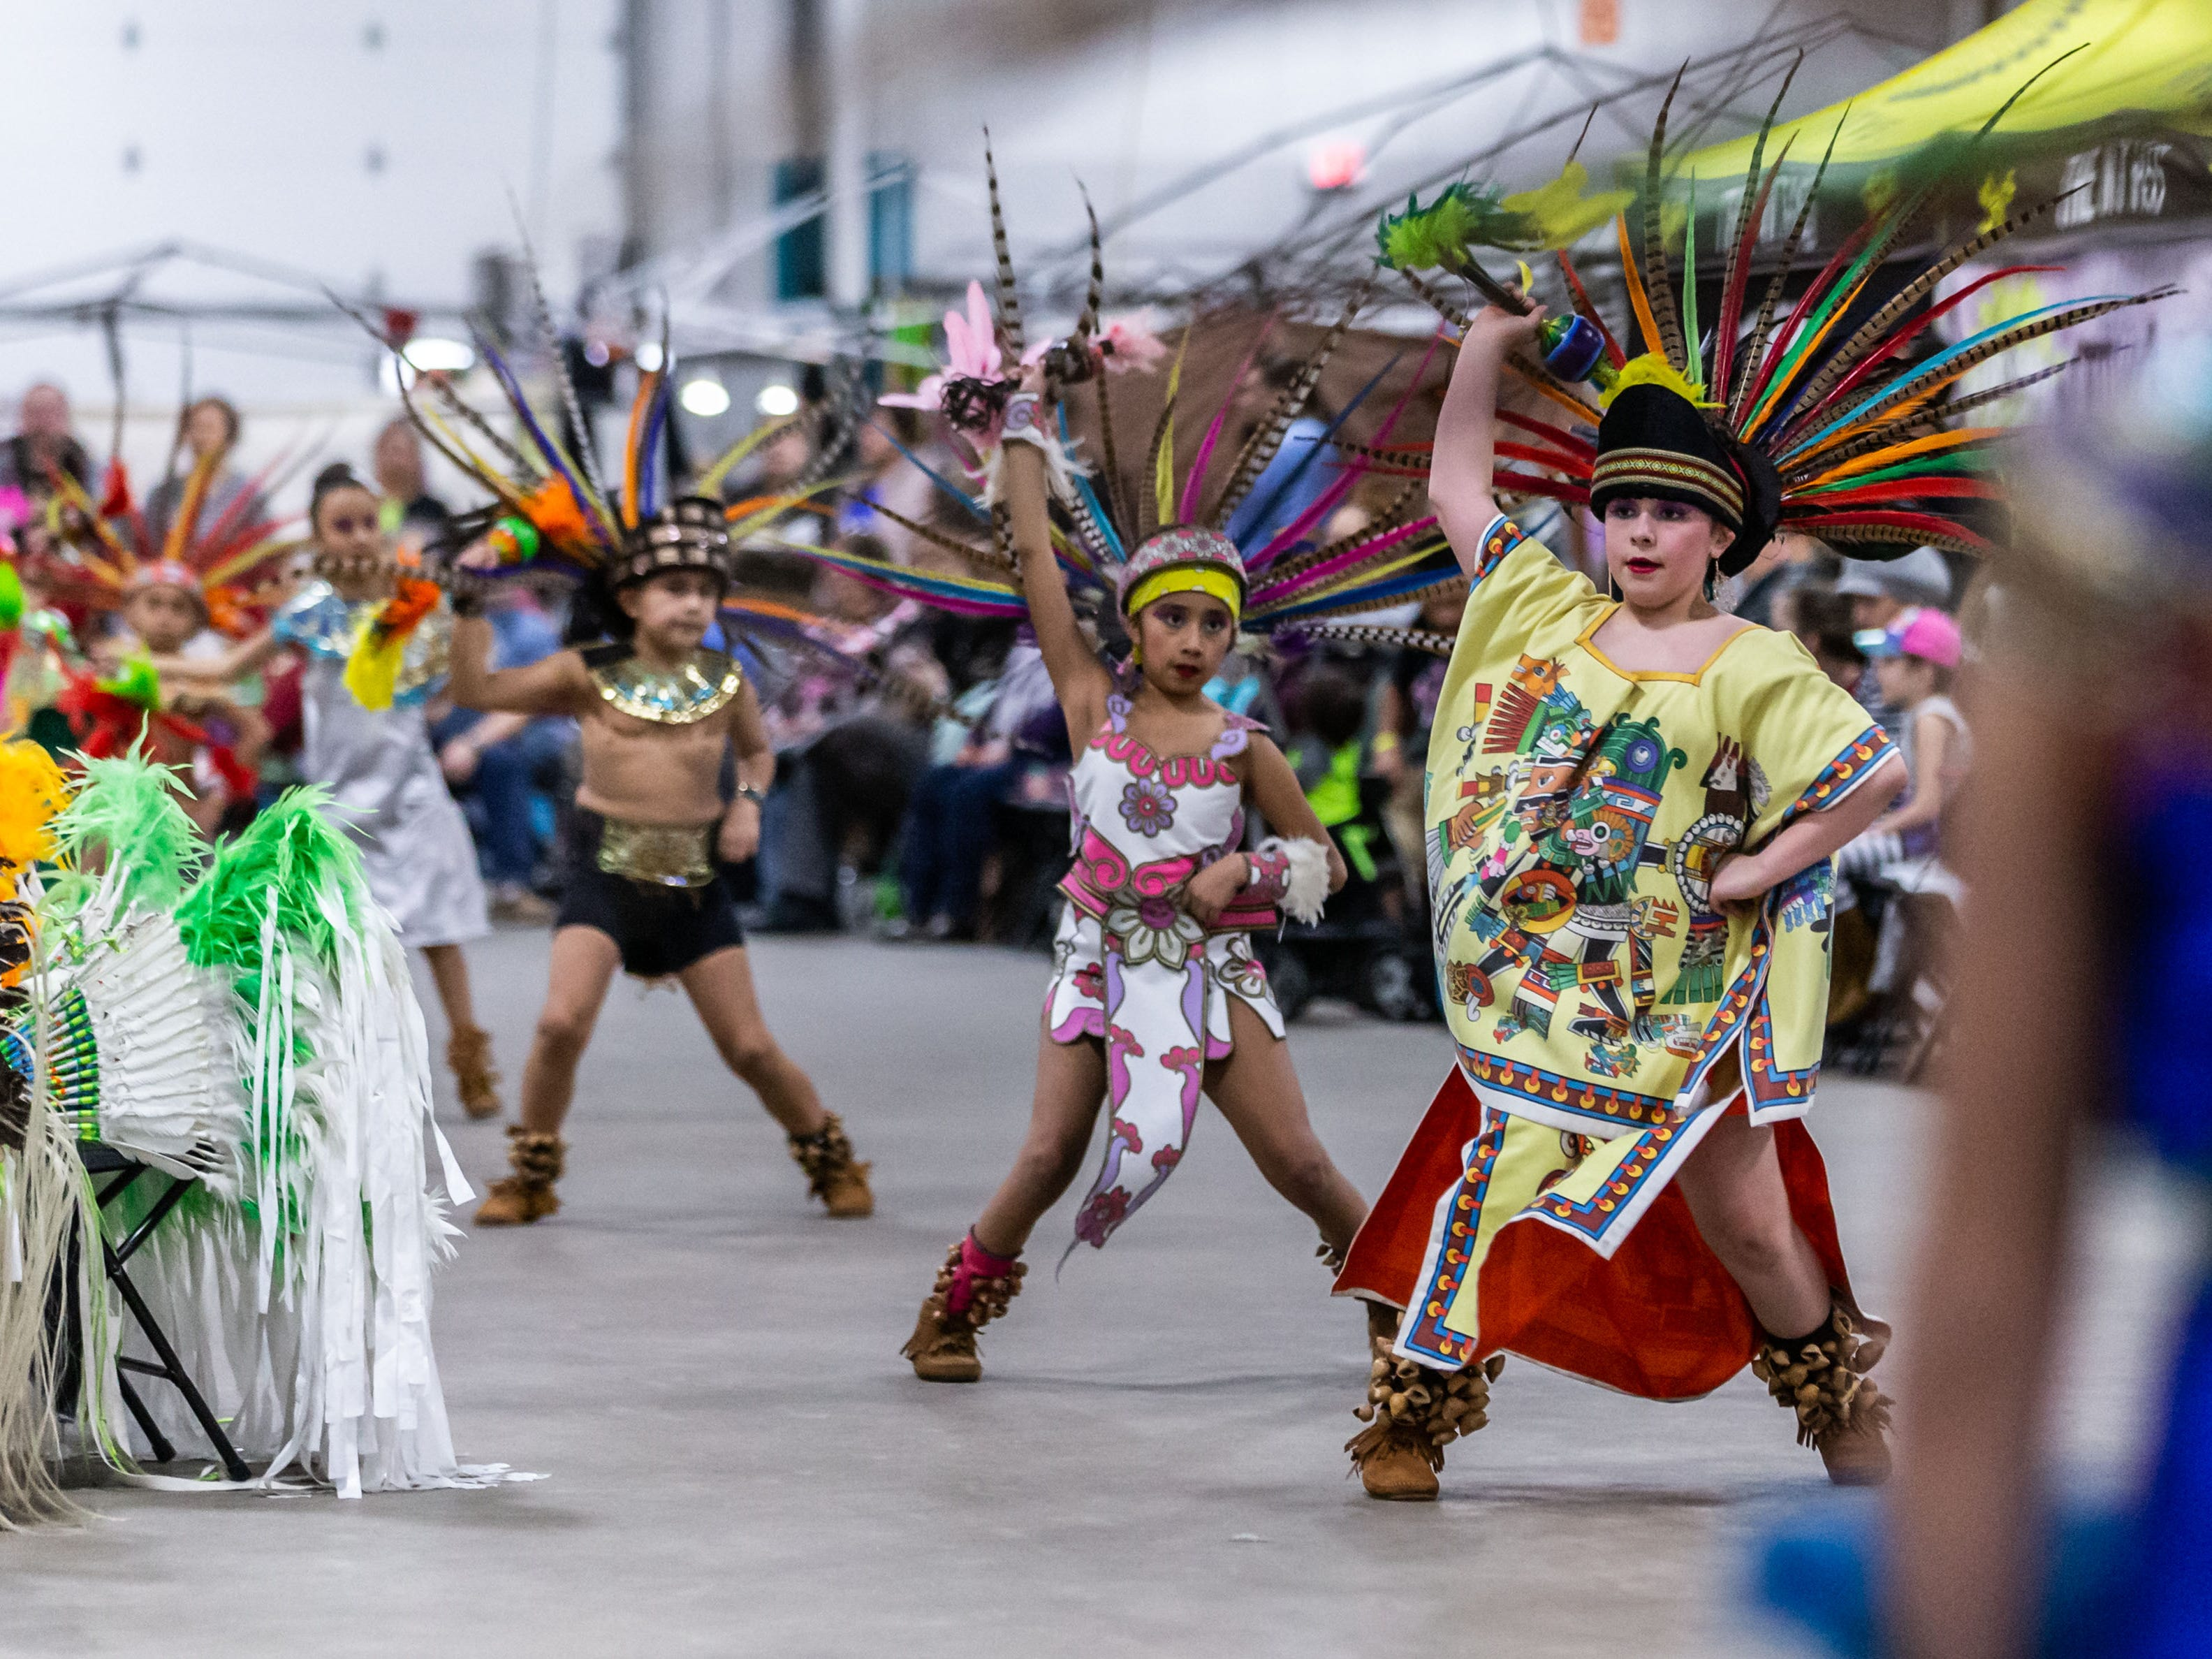 Youth dancers from Milwaukee's Dance Academy of Mexico perform for spectators during the Indian Summer Festival's 28th annual Winter Pow Wow at Wisconsin State Fair Park on Sunday, March 10, 2019.